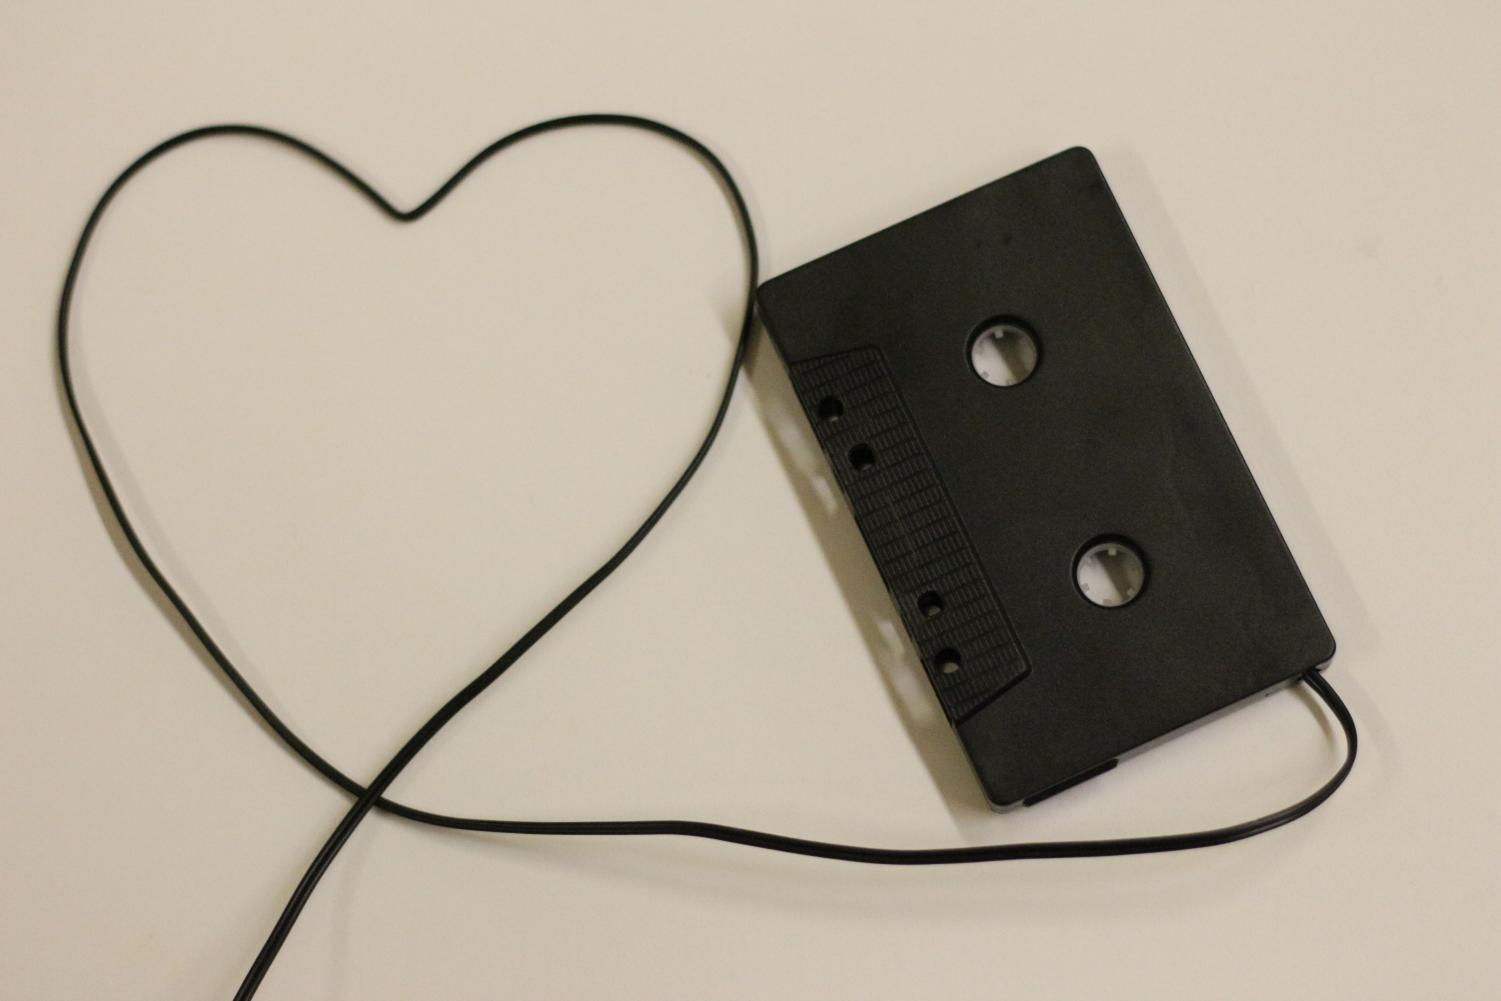 An old tape with a cord in the shape of a heart.